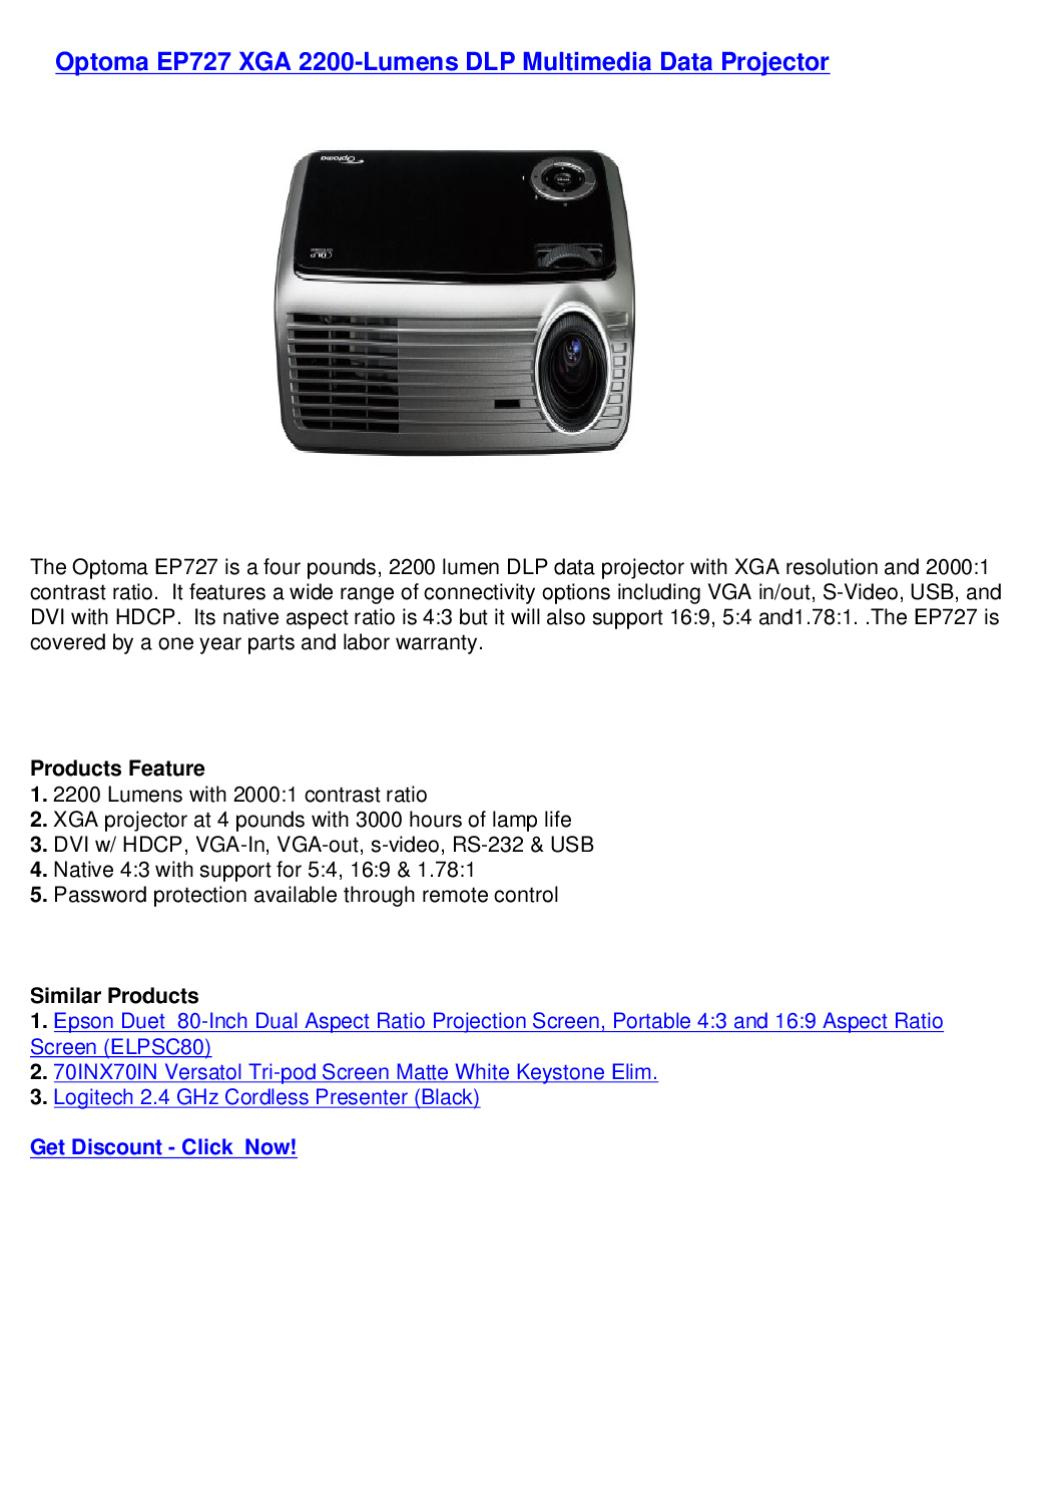 Optoma EP727 XGA 2200-Lumens DLP Multimedia Data Projector